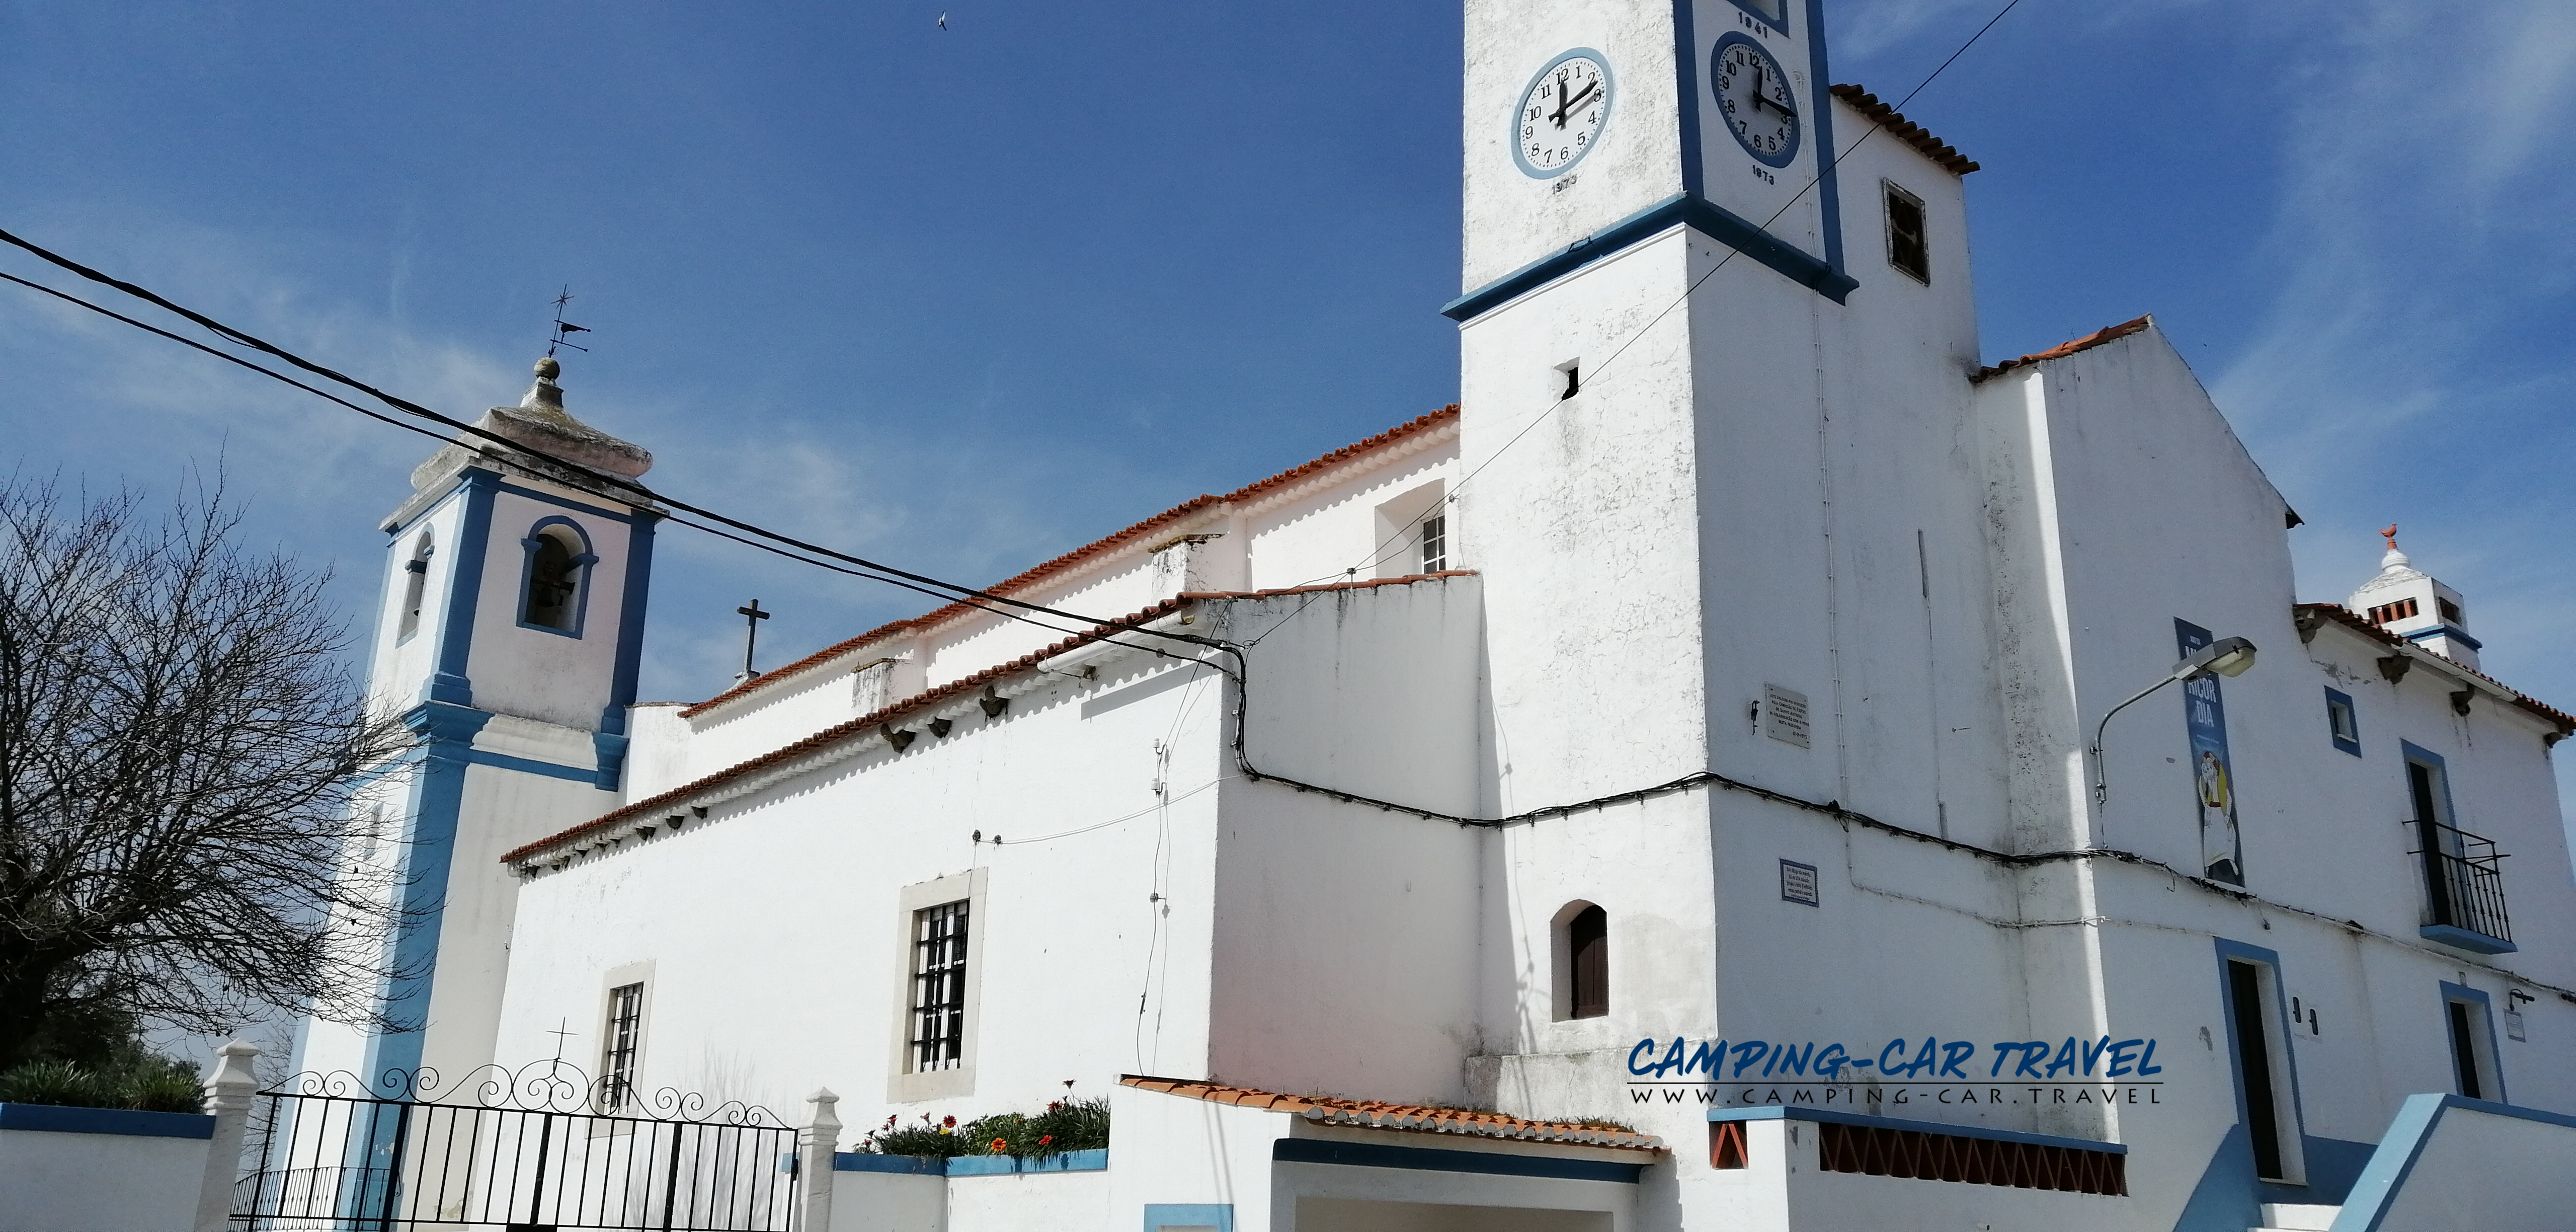 aire services camping car Terrugem Portugal